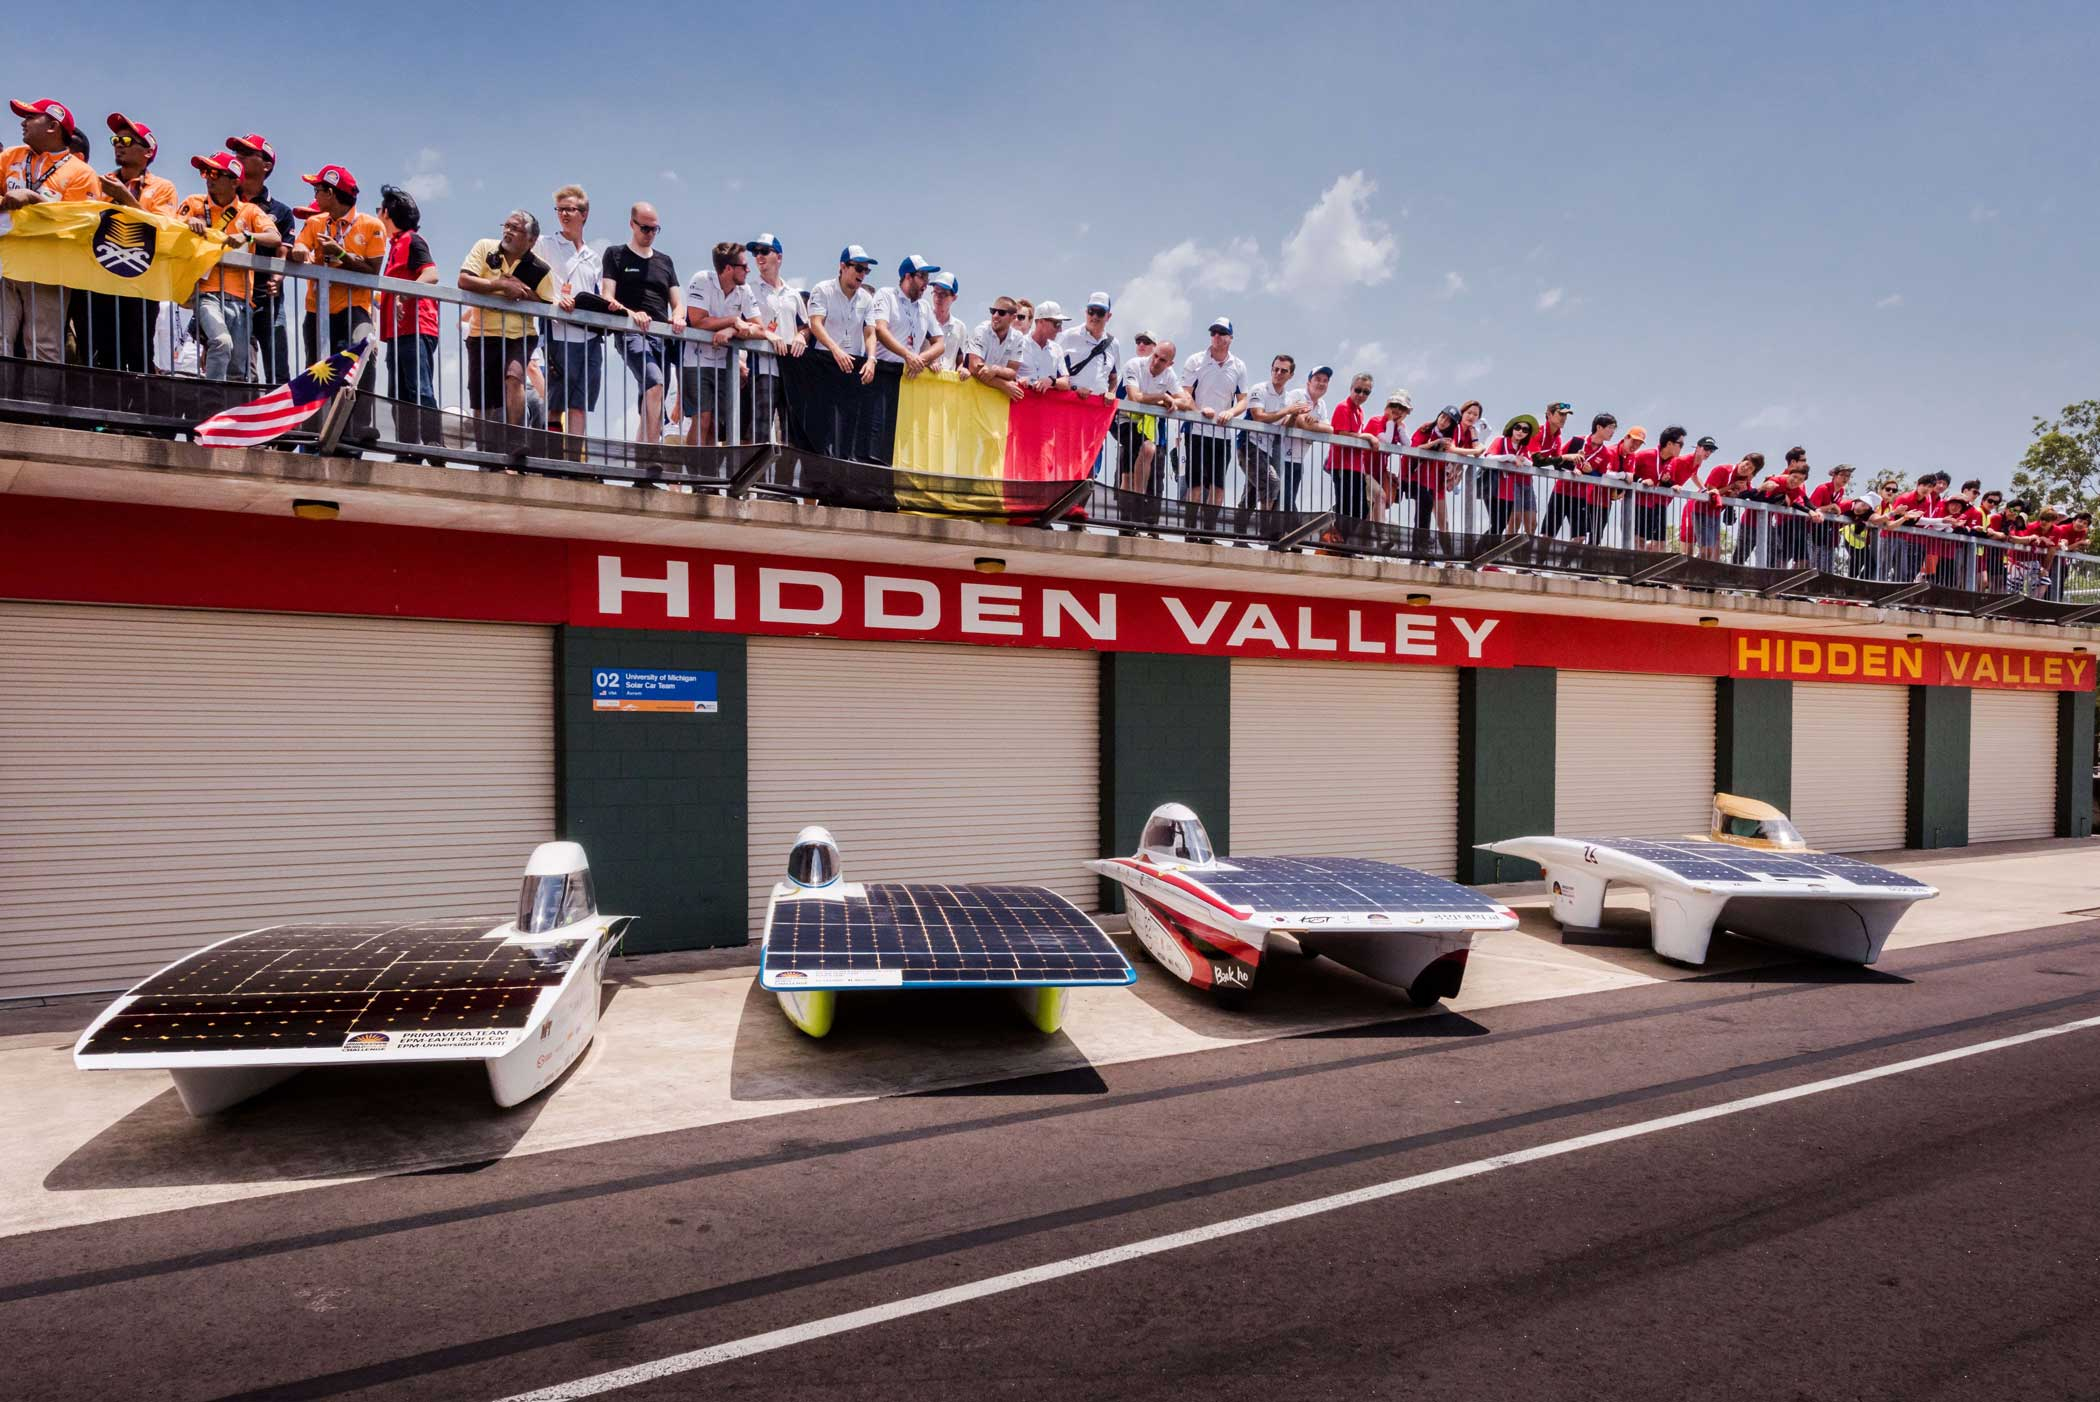 Punch Powertrain Solar Team shows team members posing above their cars after the qualification lap at Hidden Valley race track in Darwin on Oct. 18, 2015.